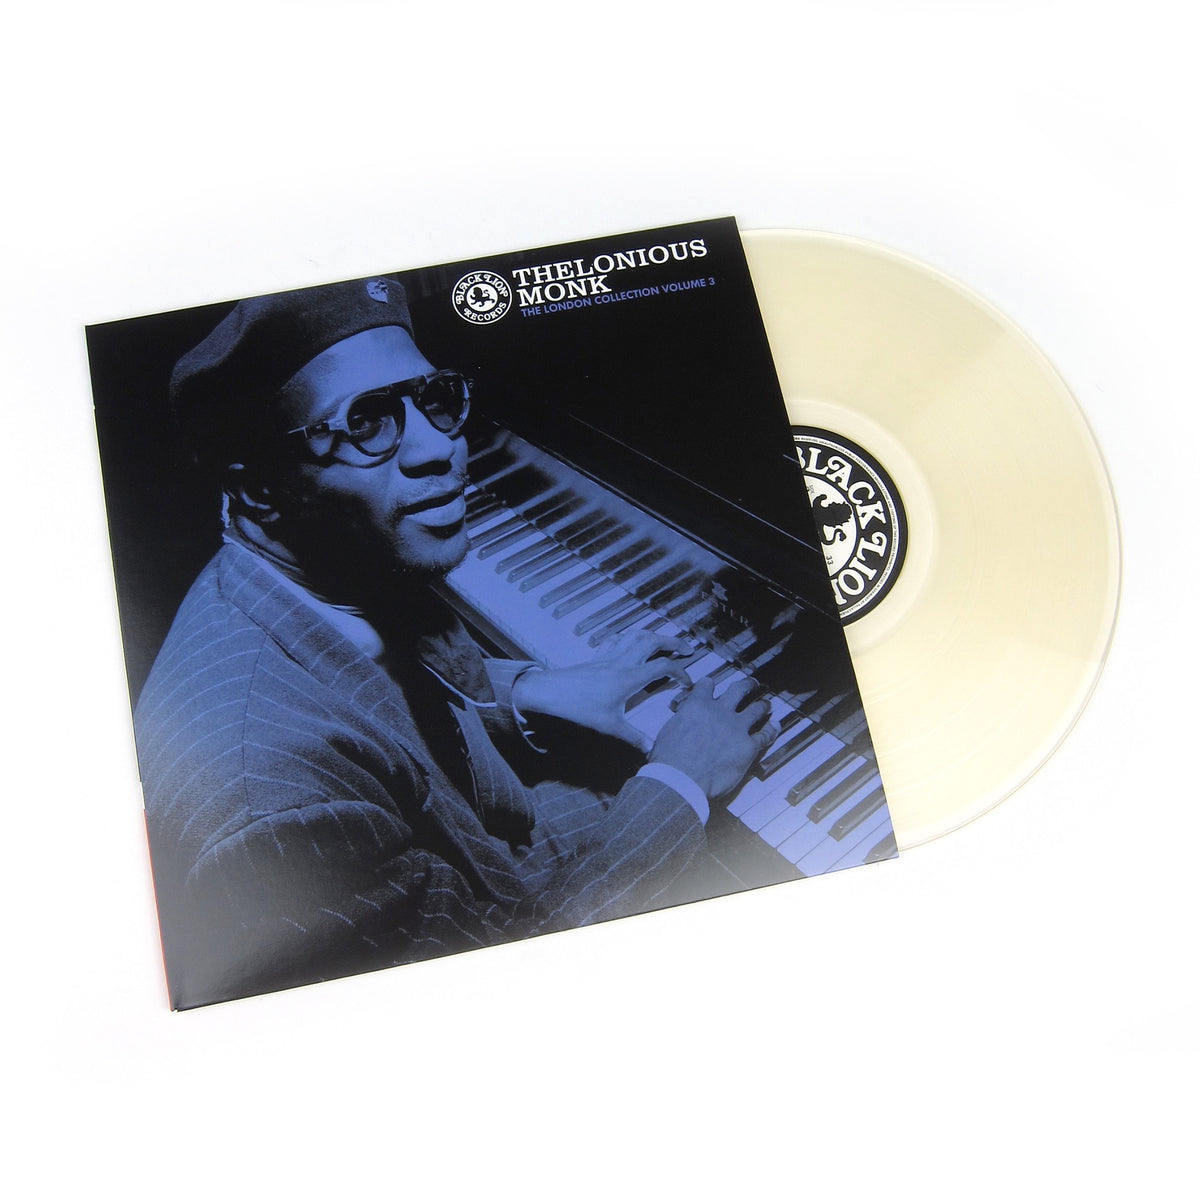 Thelonious Monk: London Collection Vol.3 (180g, Colored Vinyl) Vinyl LP (Record Store Day)